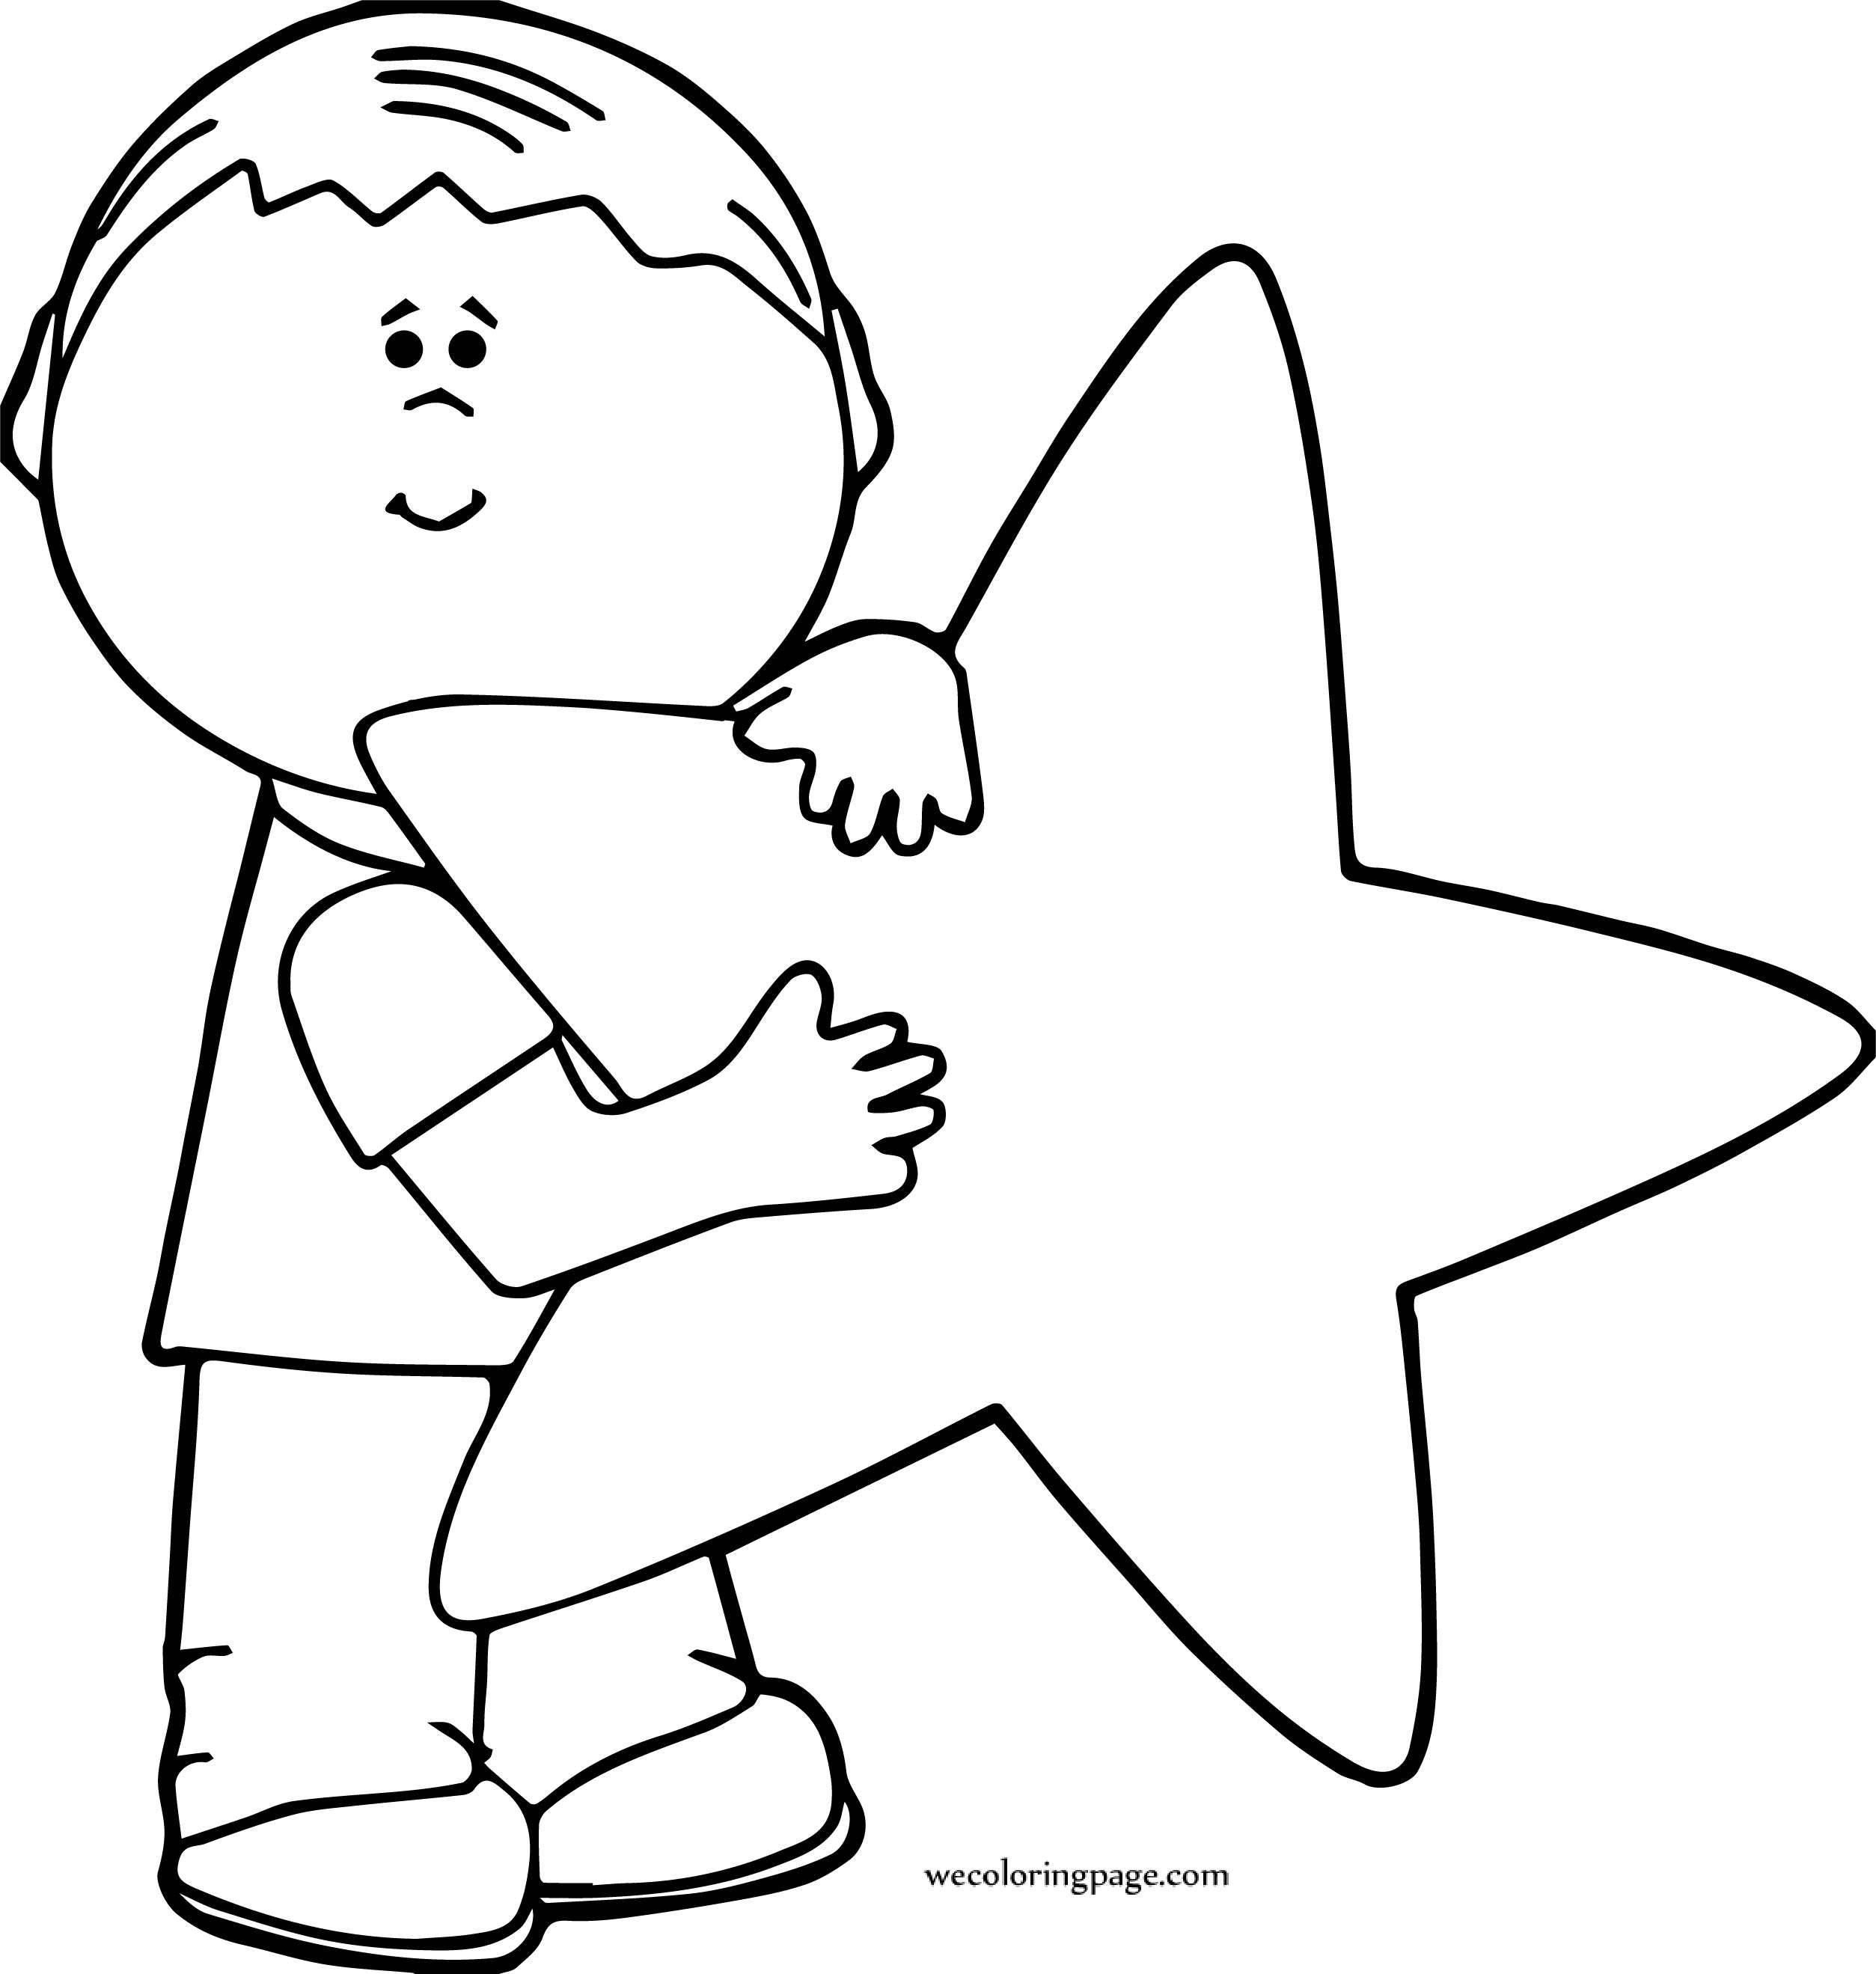 Boy Holding Star Coloring Page